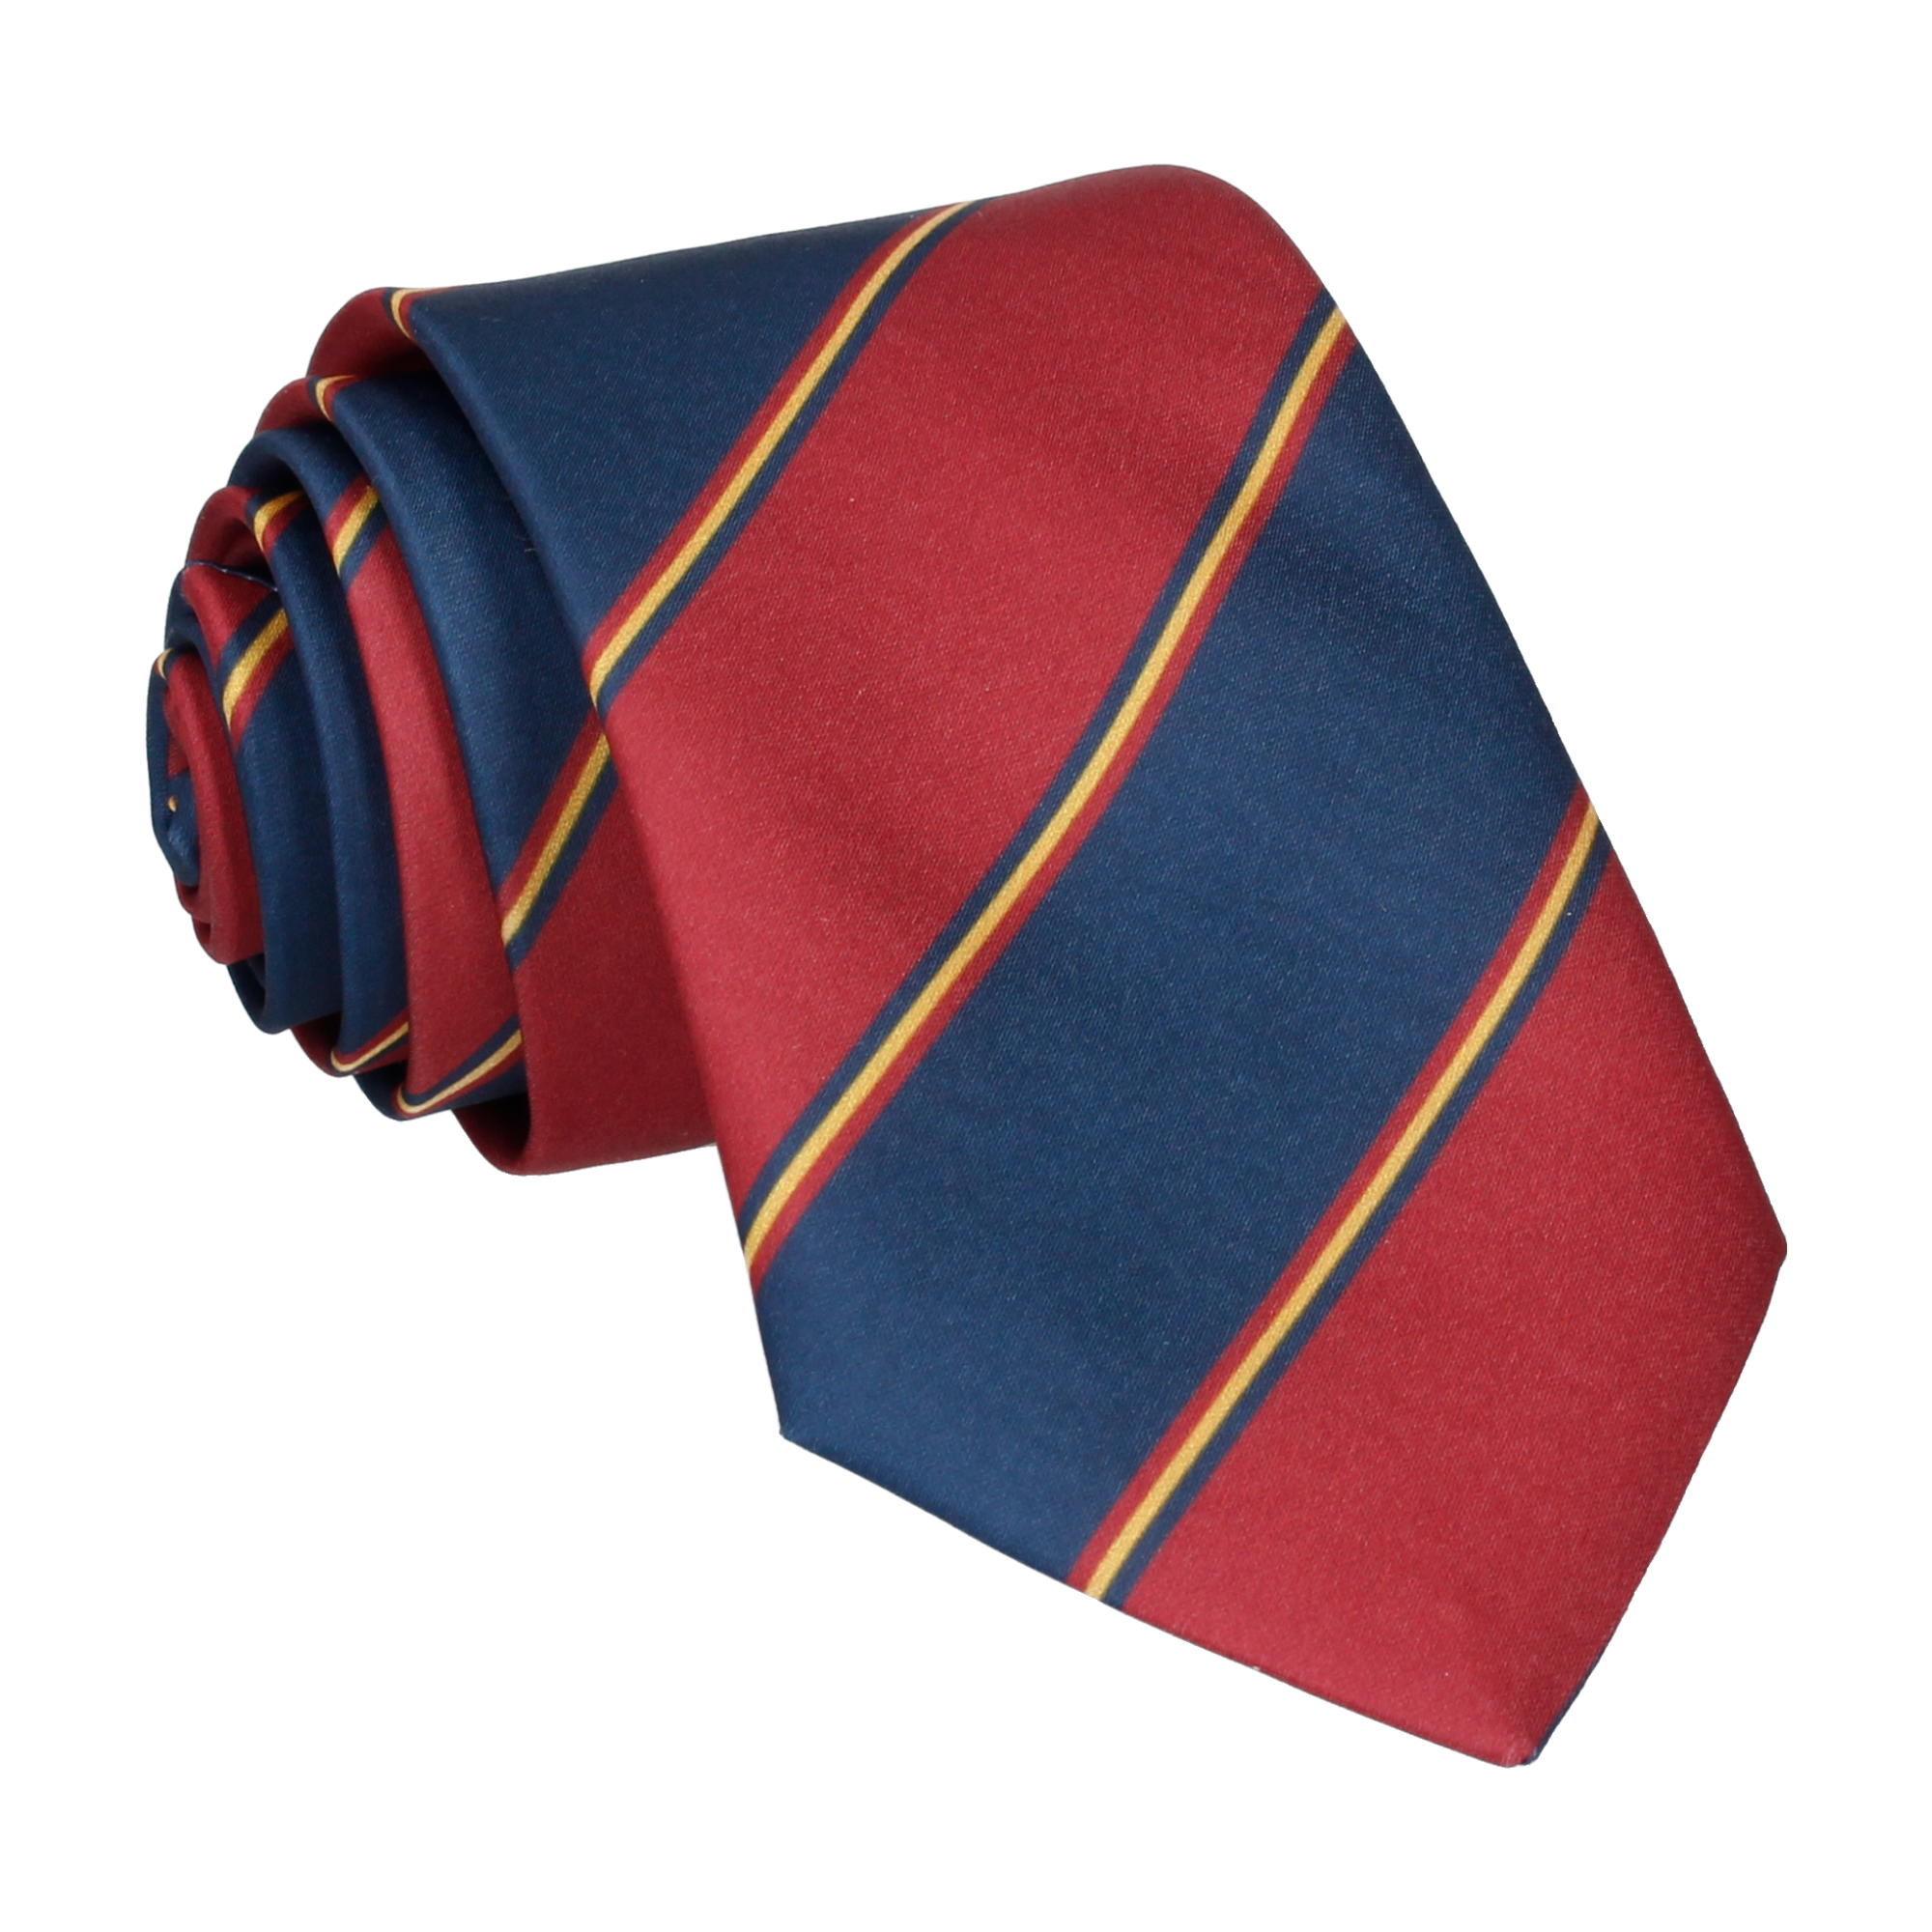 Arundel in Red & Navy Tie